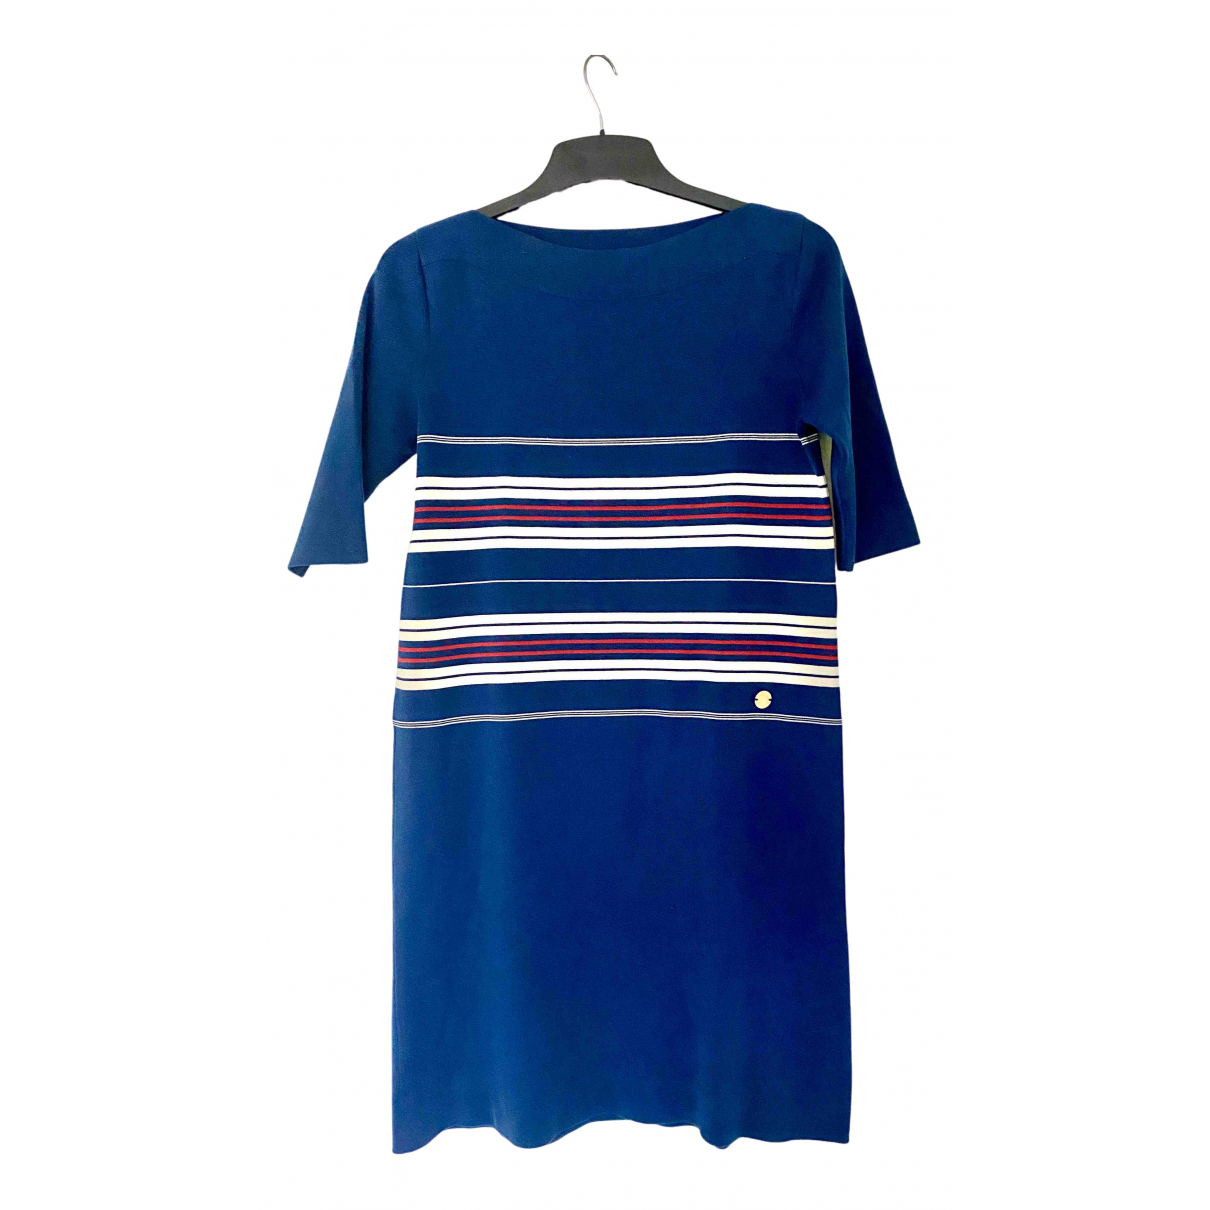 Louis Vuitton N Blue Cotton dress for Women M International